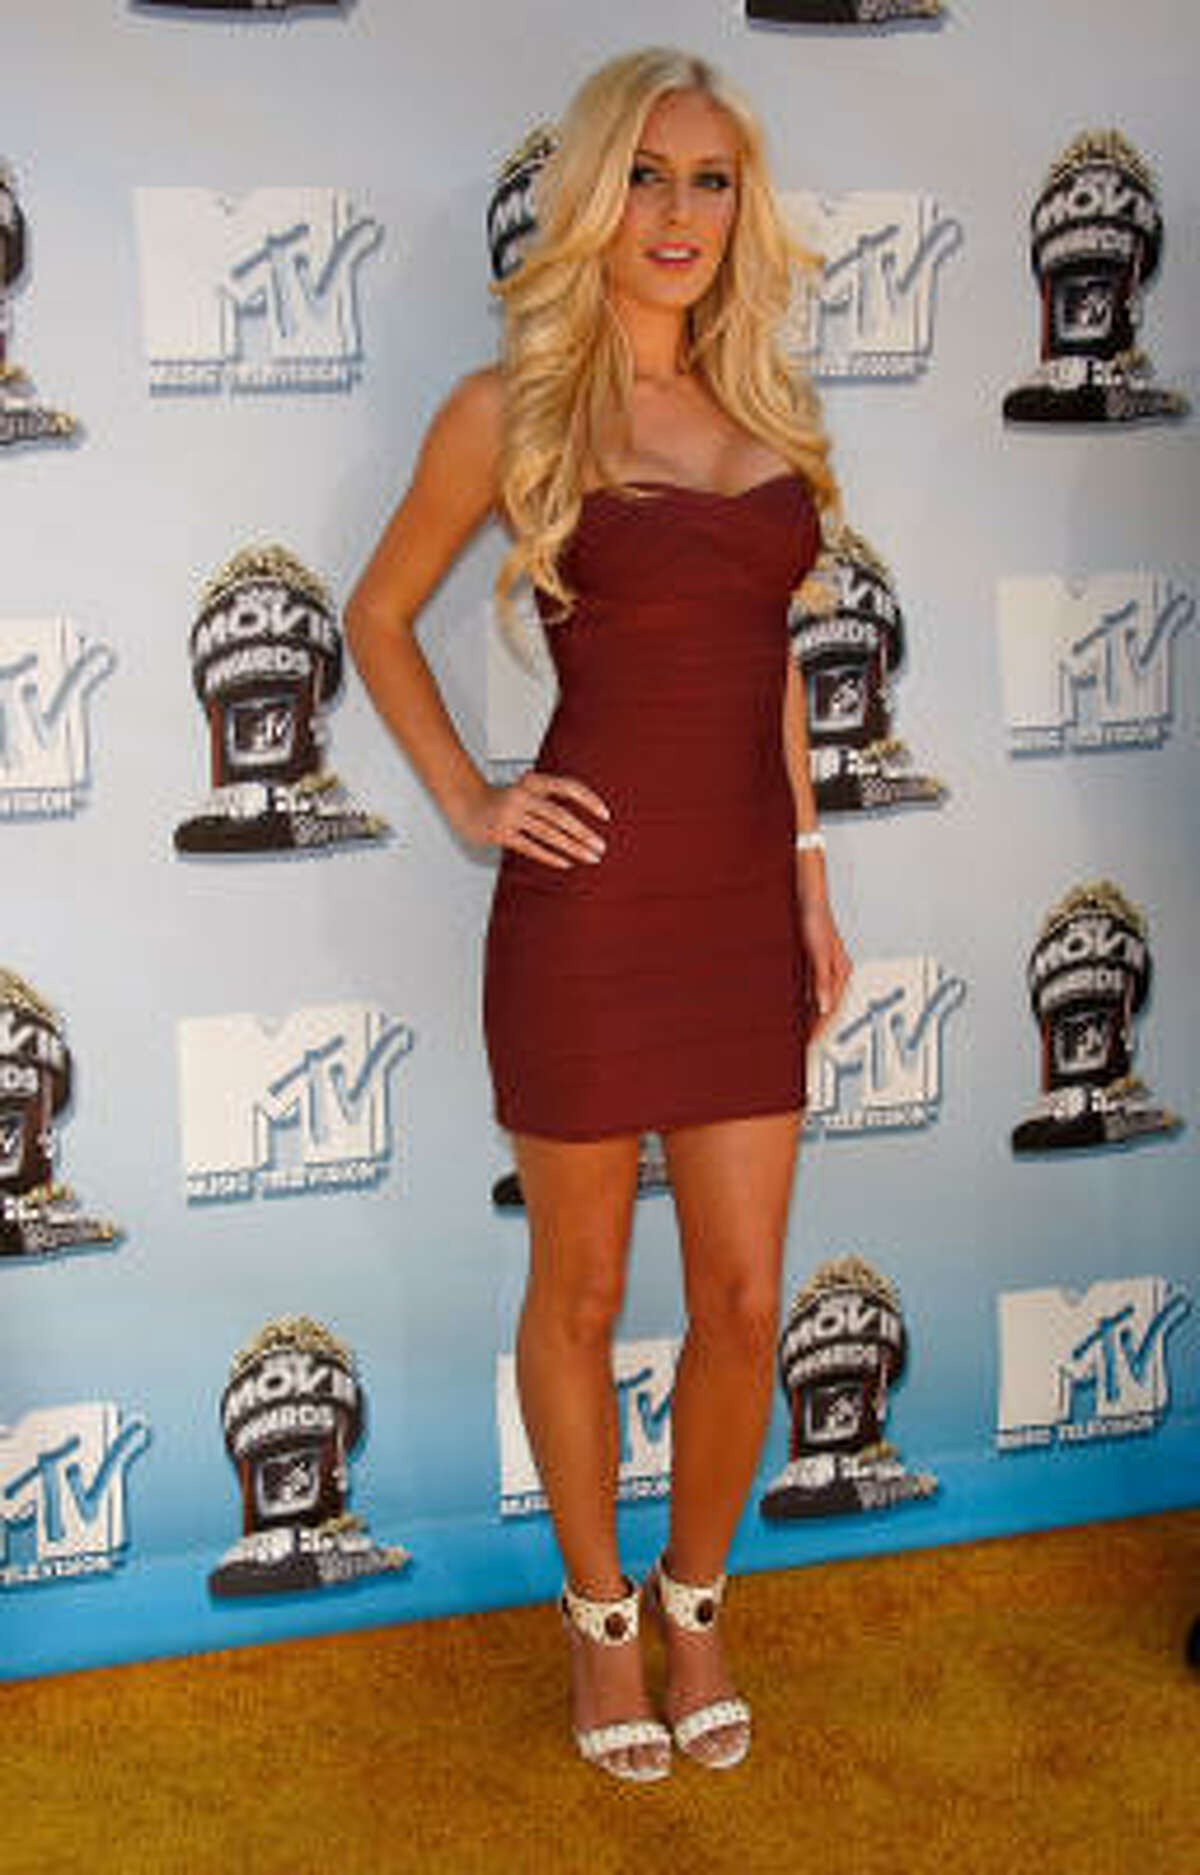 Heidi Montag True to her tiger qualities, the plastic-surgery-enhanced